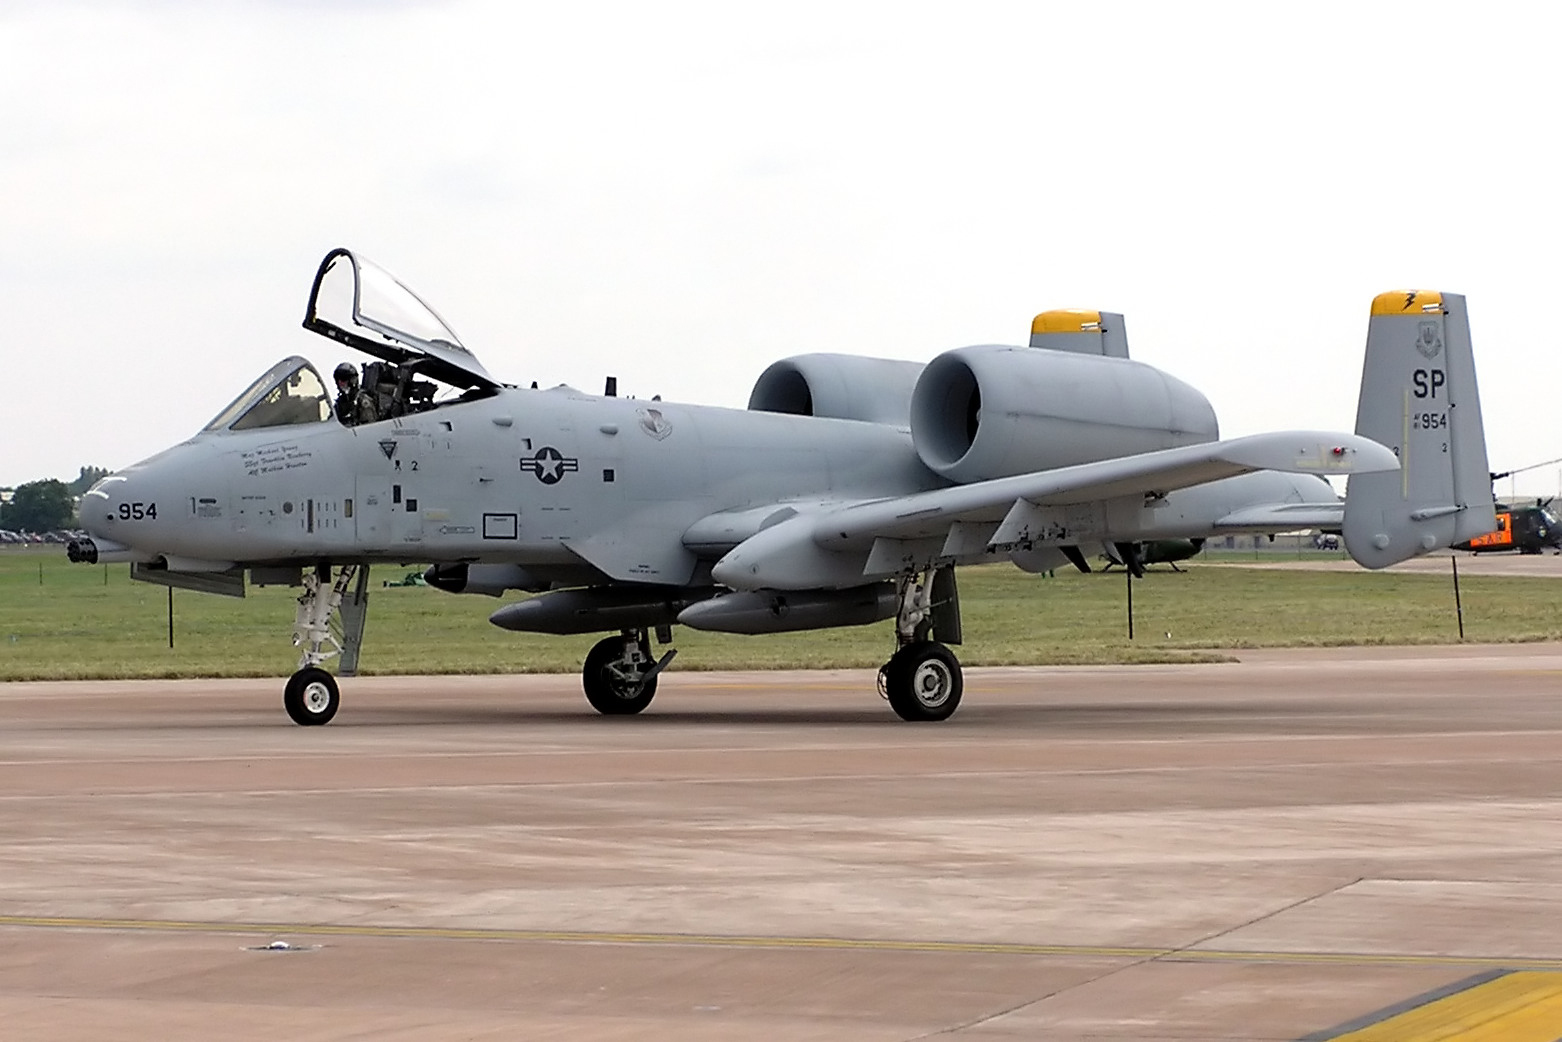 Thunderbolt.a10.fairford.arp